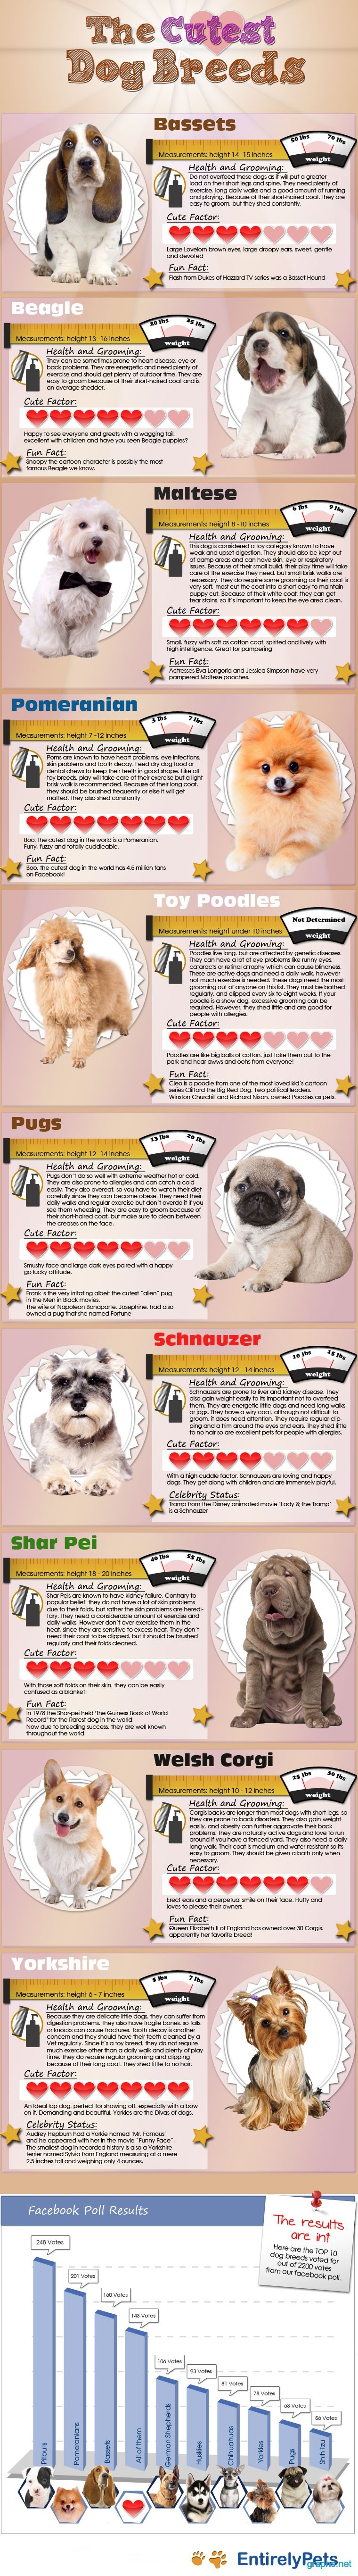 interesting facts about dog breeds